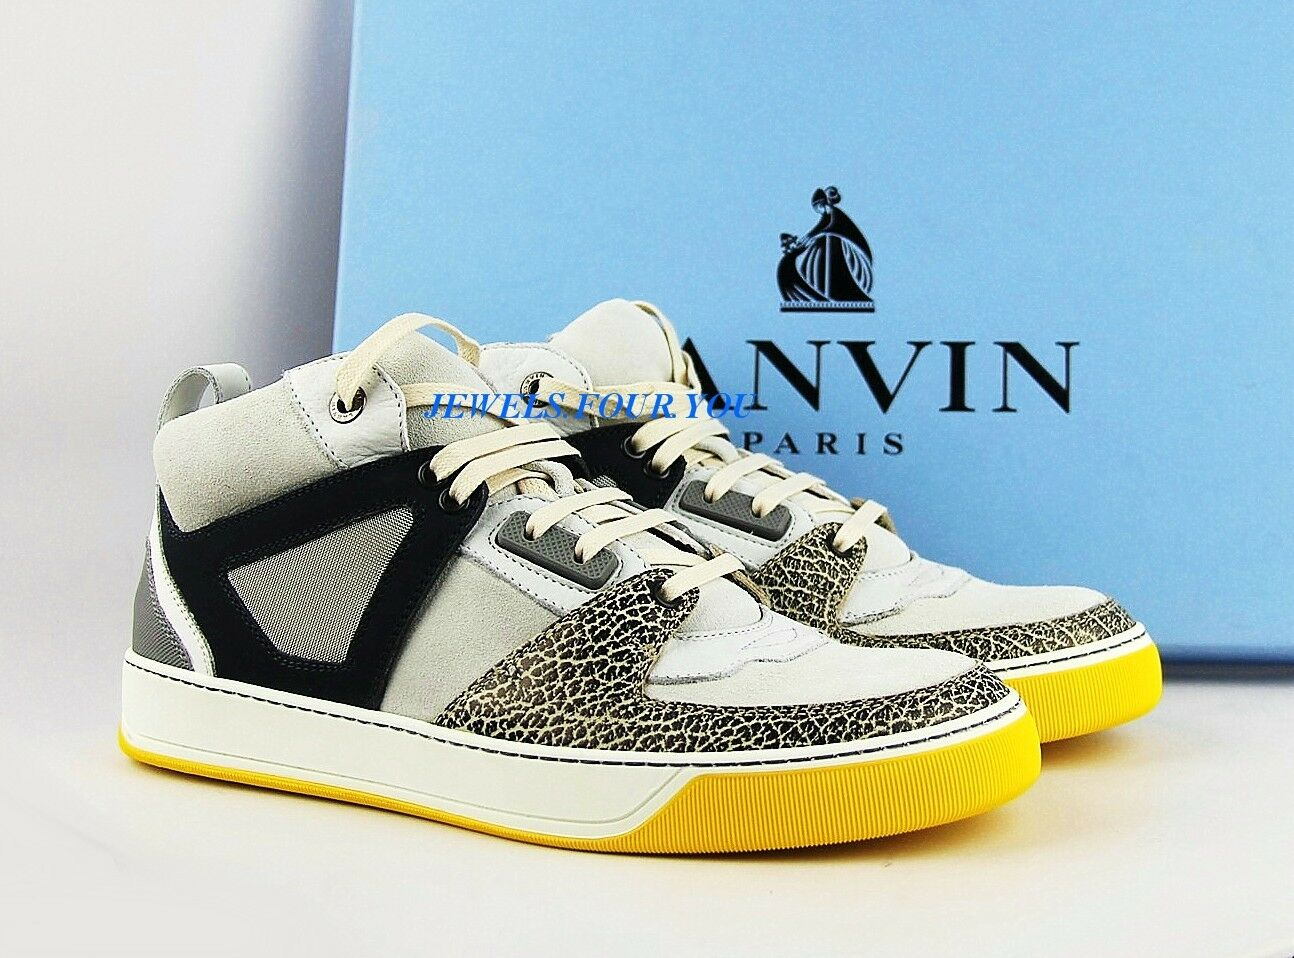 LANVIN WHITE, YELLOW 100% LEATHER RUBBER SOLE SHOES SNEAKERS ITALY NEW BOX